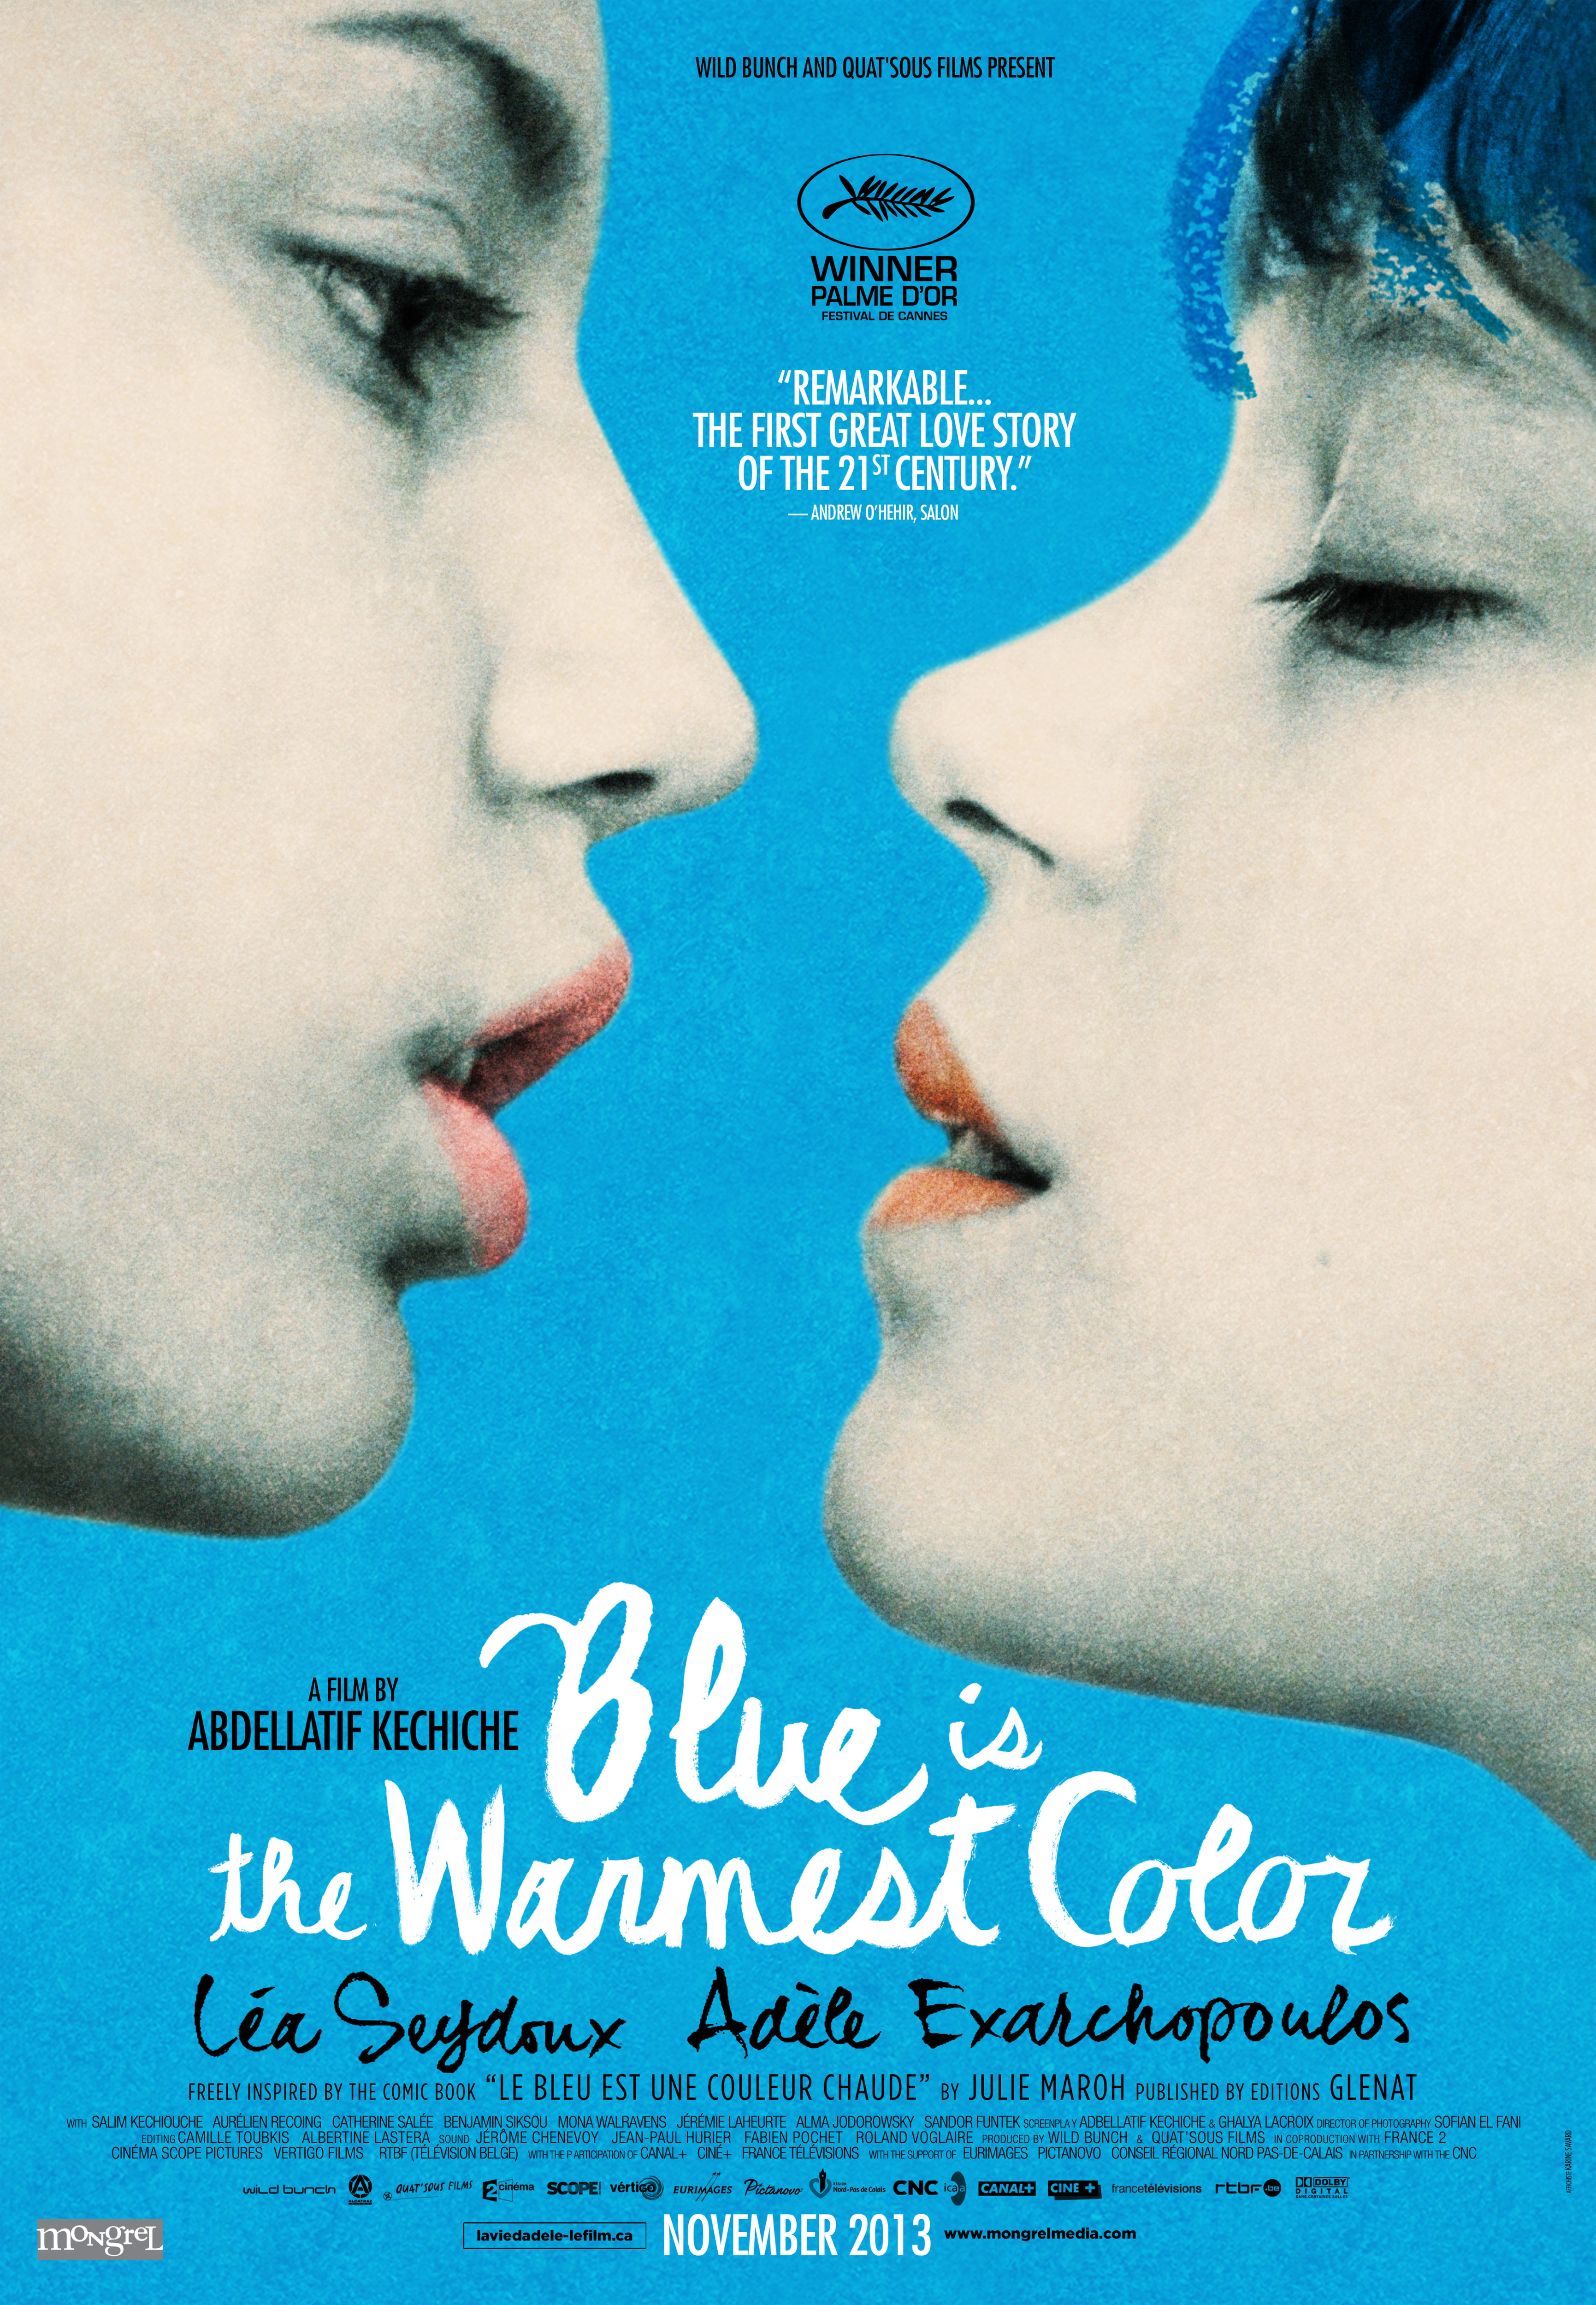 Blue Warmest Color 2013